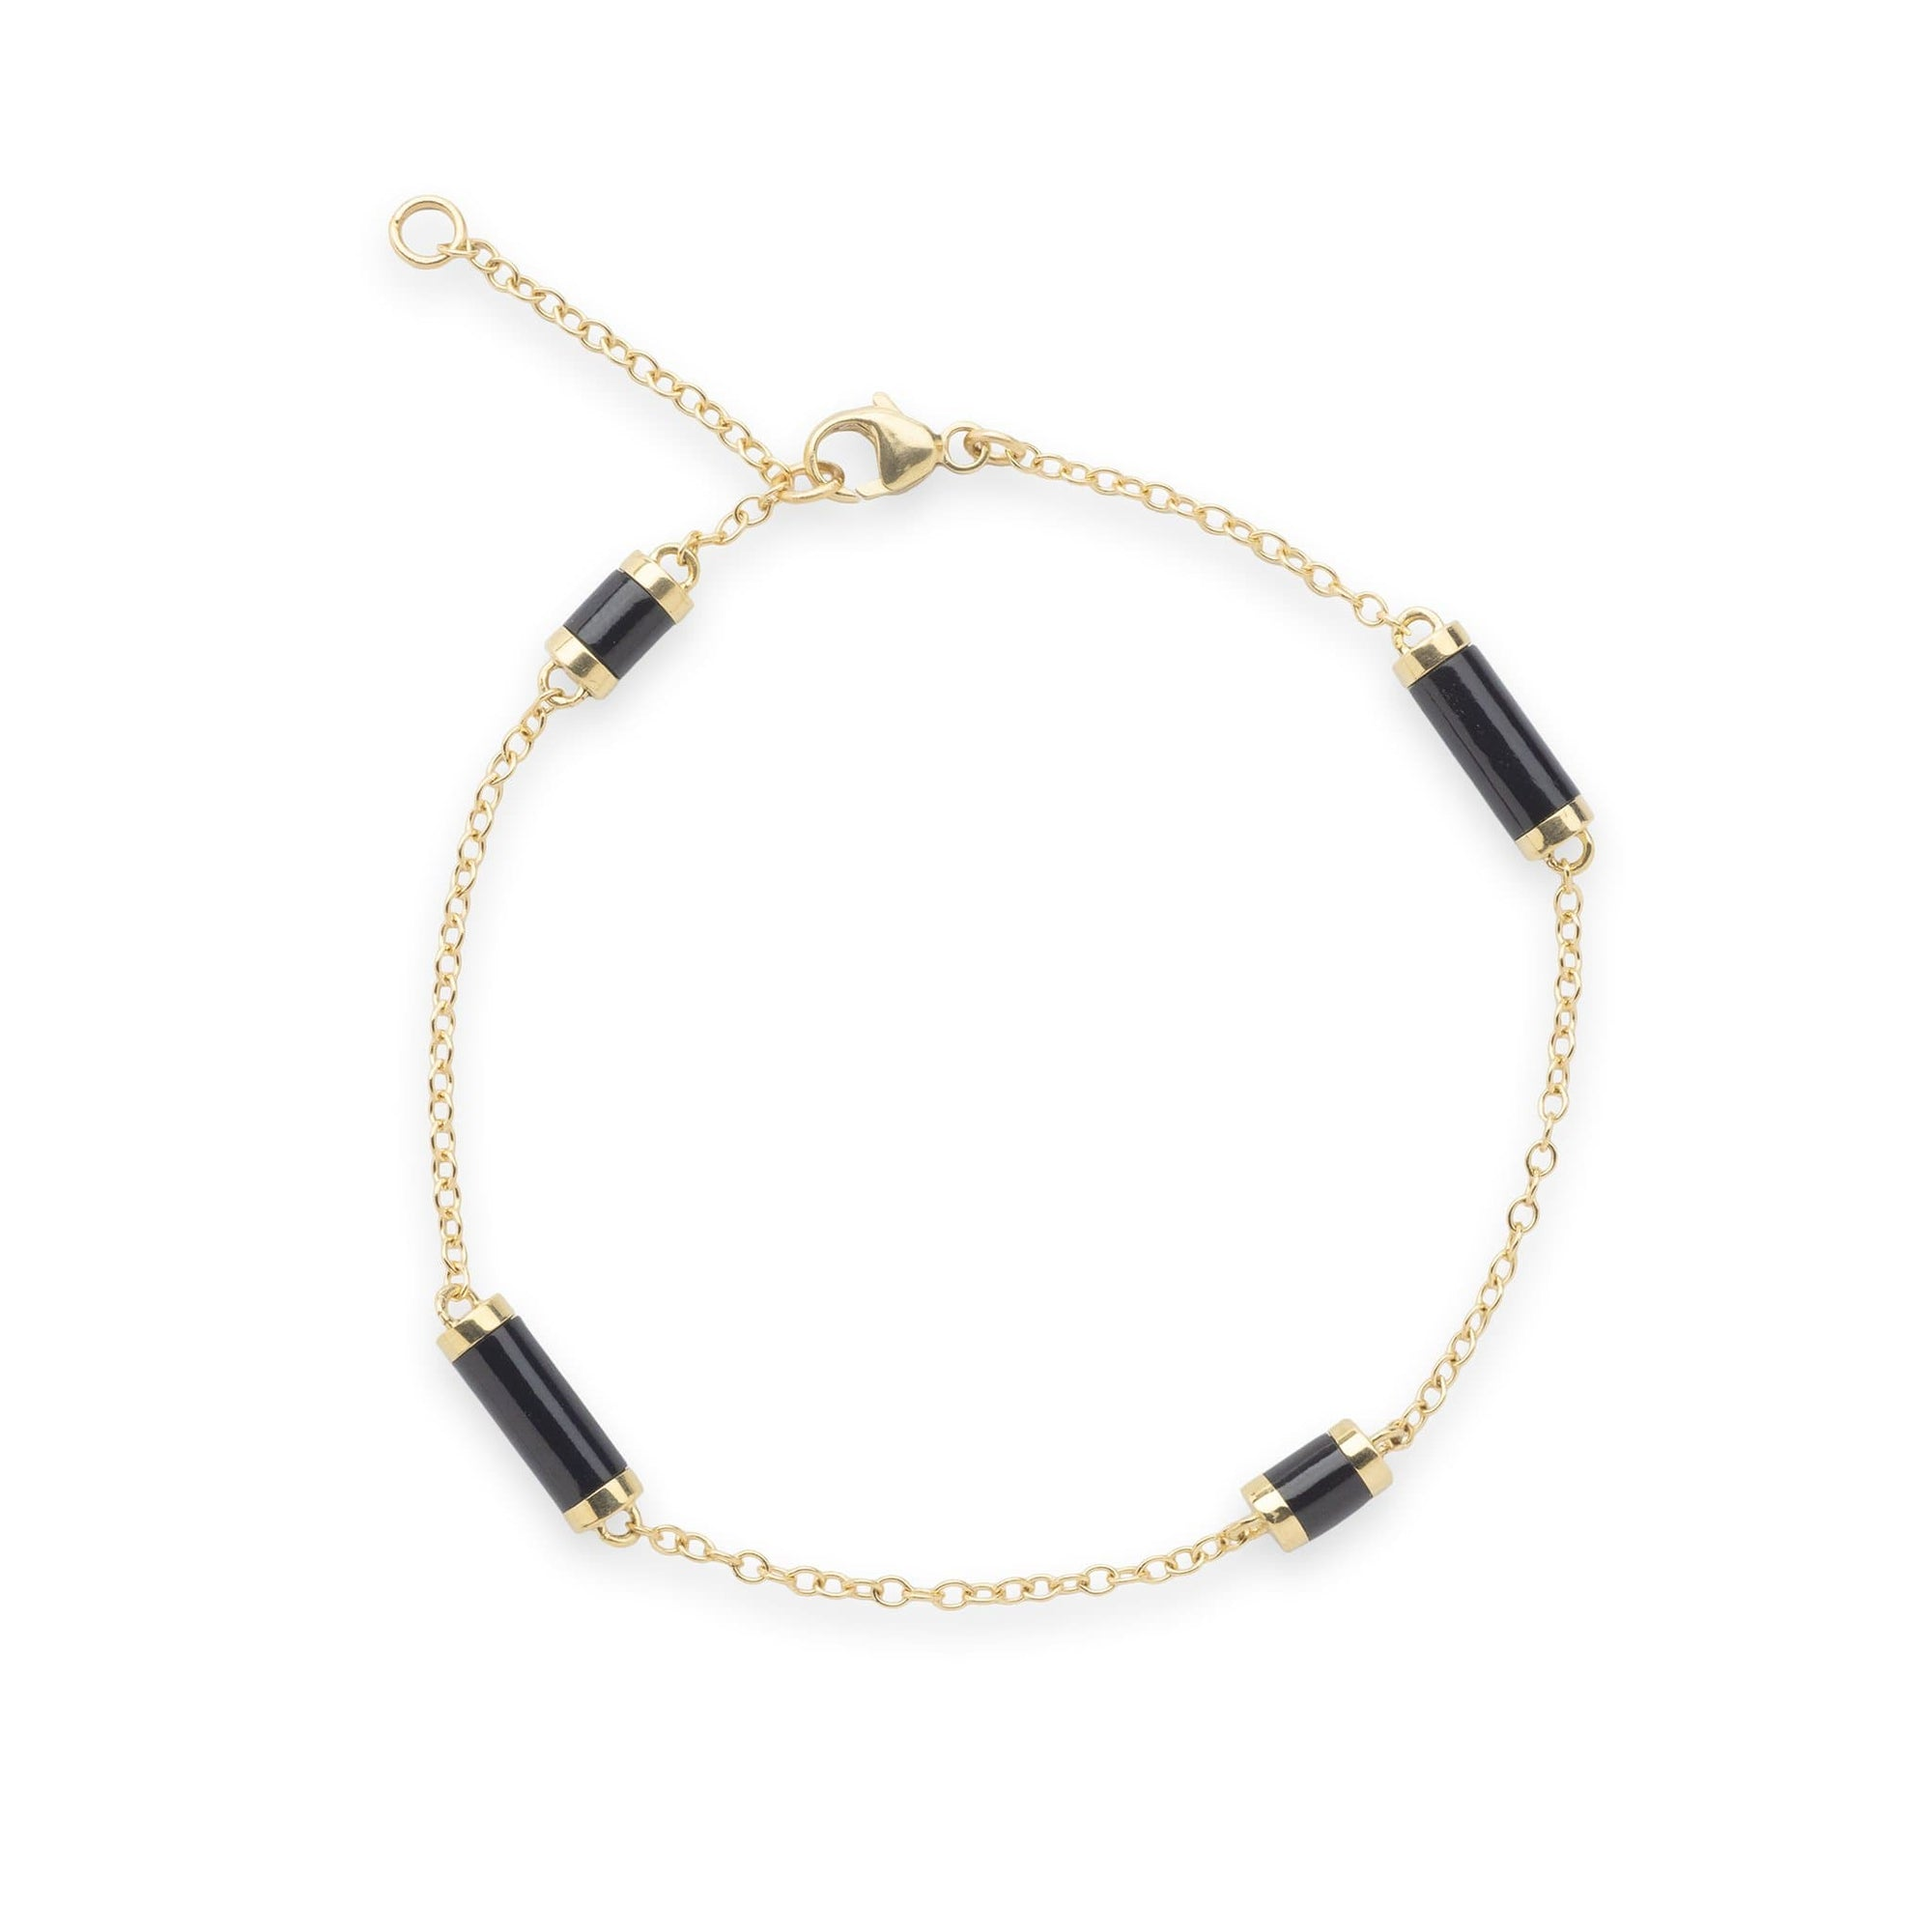 Ocean Chimes Station Bracelet in 14K Yellow Gold - Maui Divers Jewelry